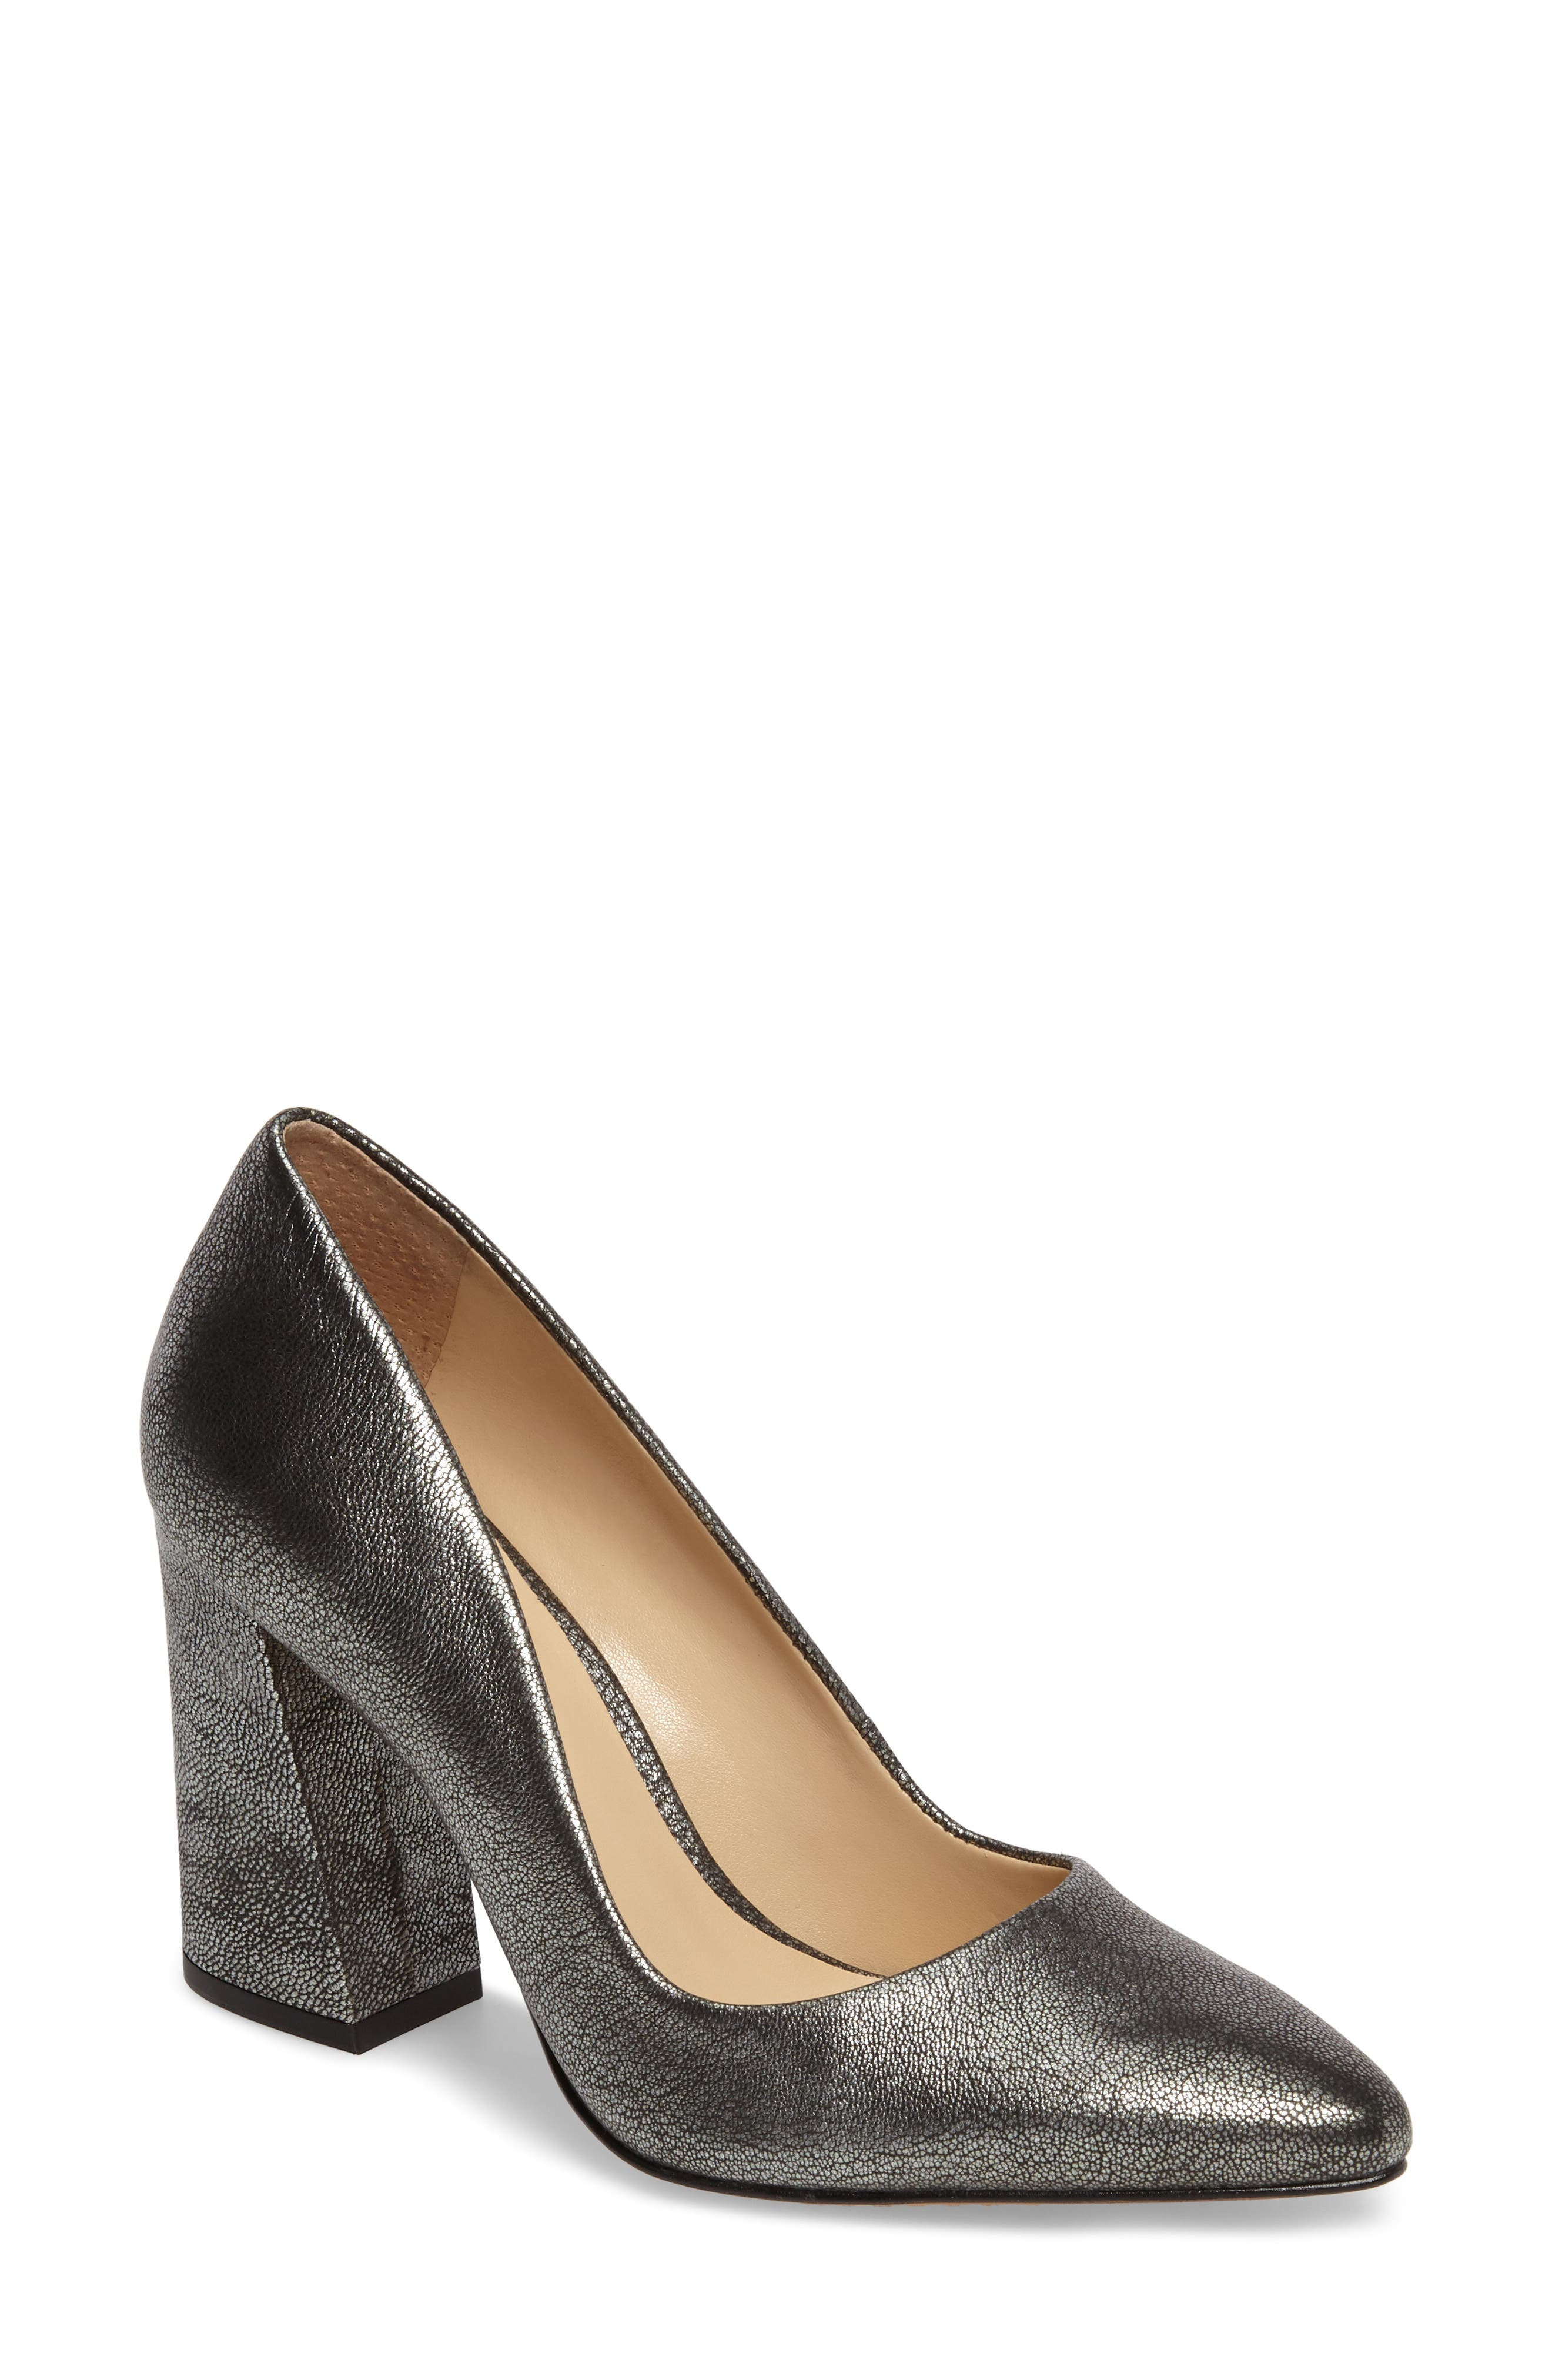 Alternate Image 1 Selected - Vince Camuto Talise Pointy Toe Pump (Women)